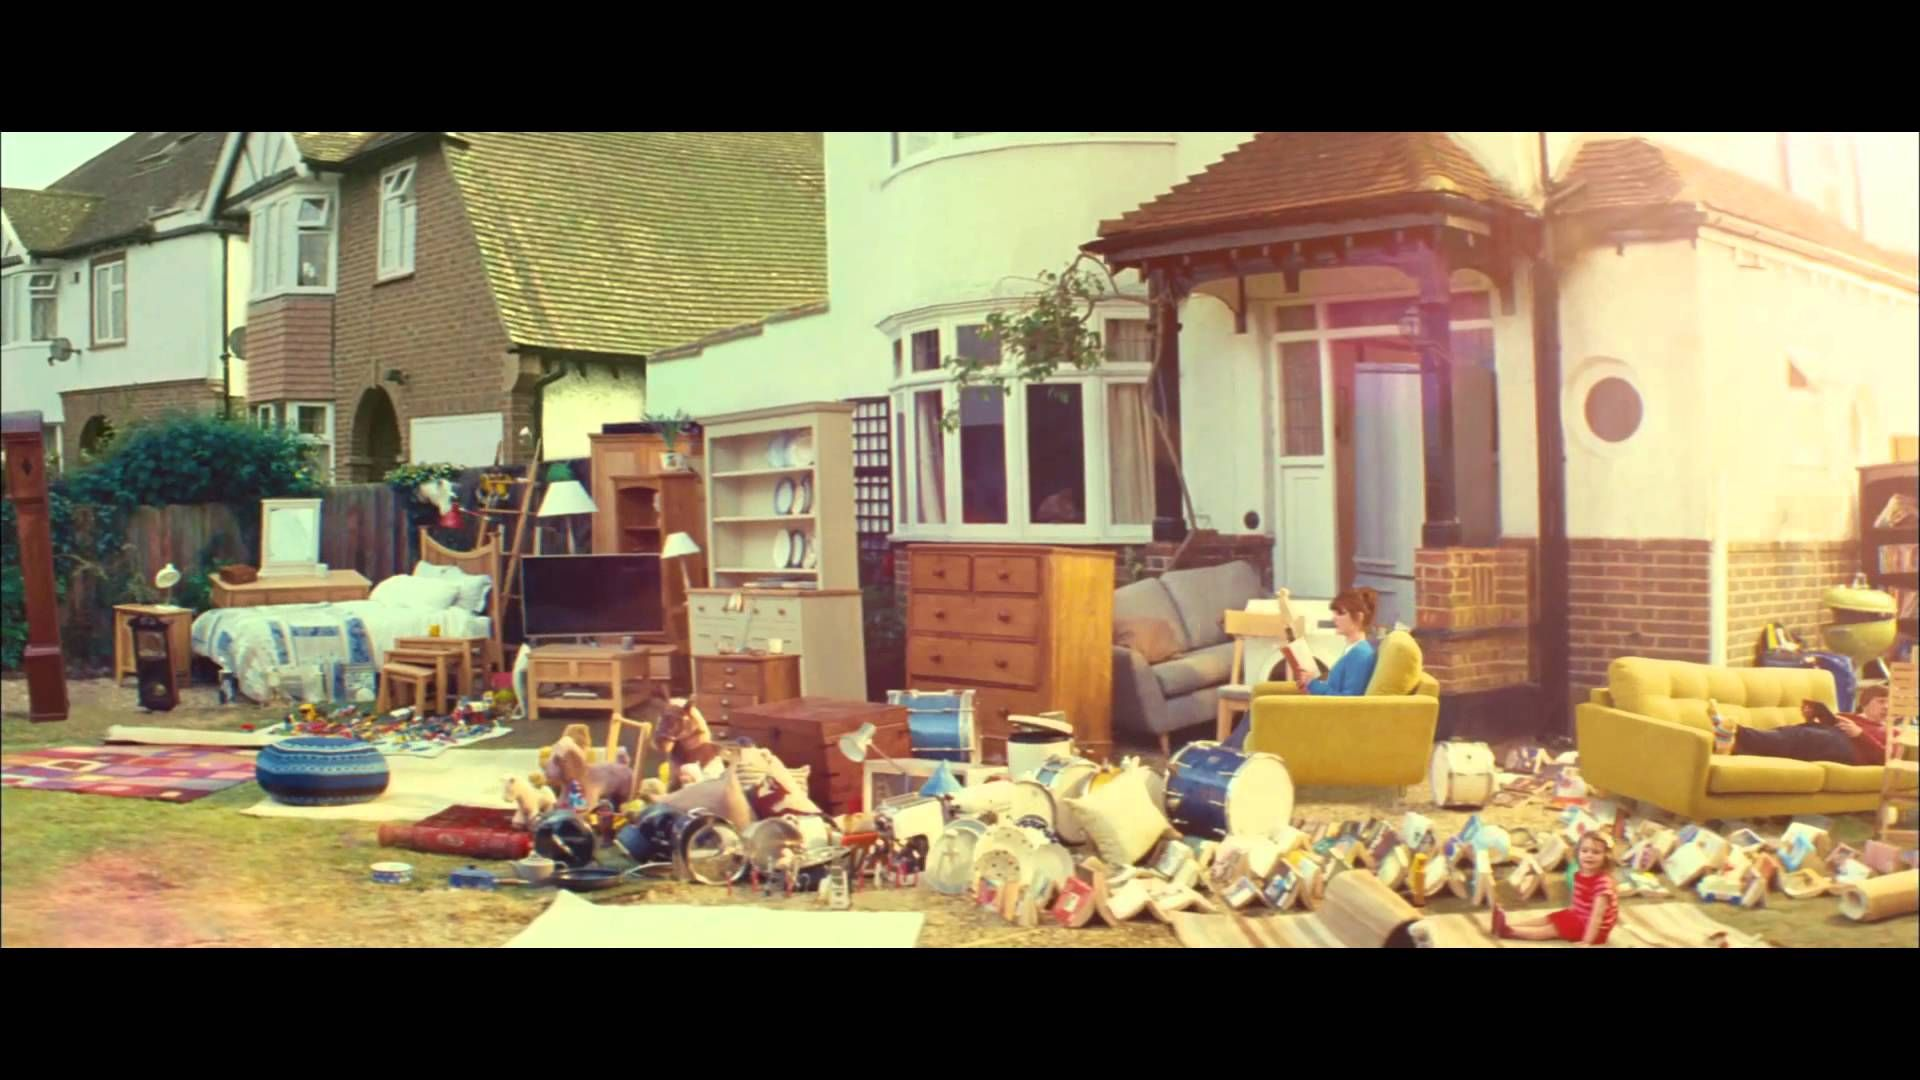 John Lewis Home Insurance Advert 2013 Things Matter John Lewis